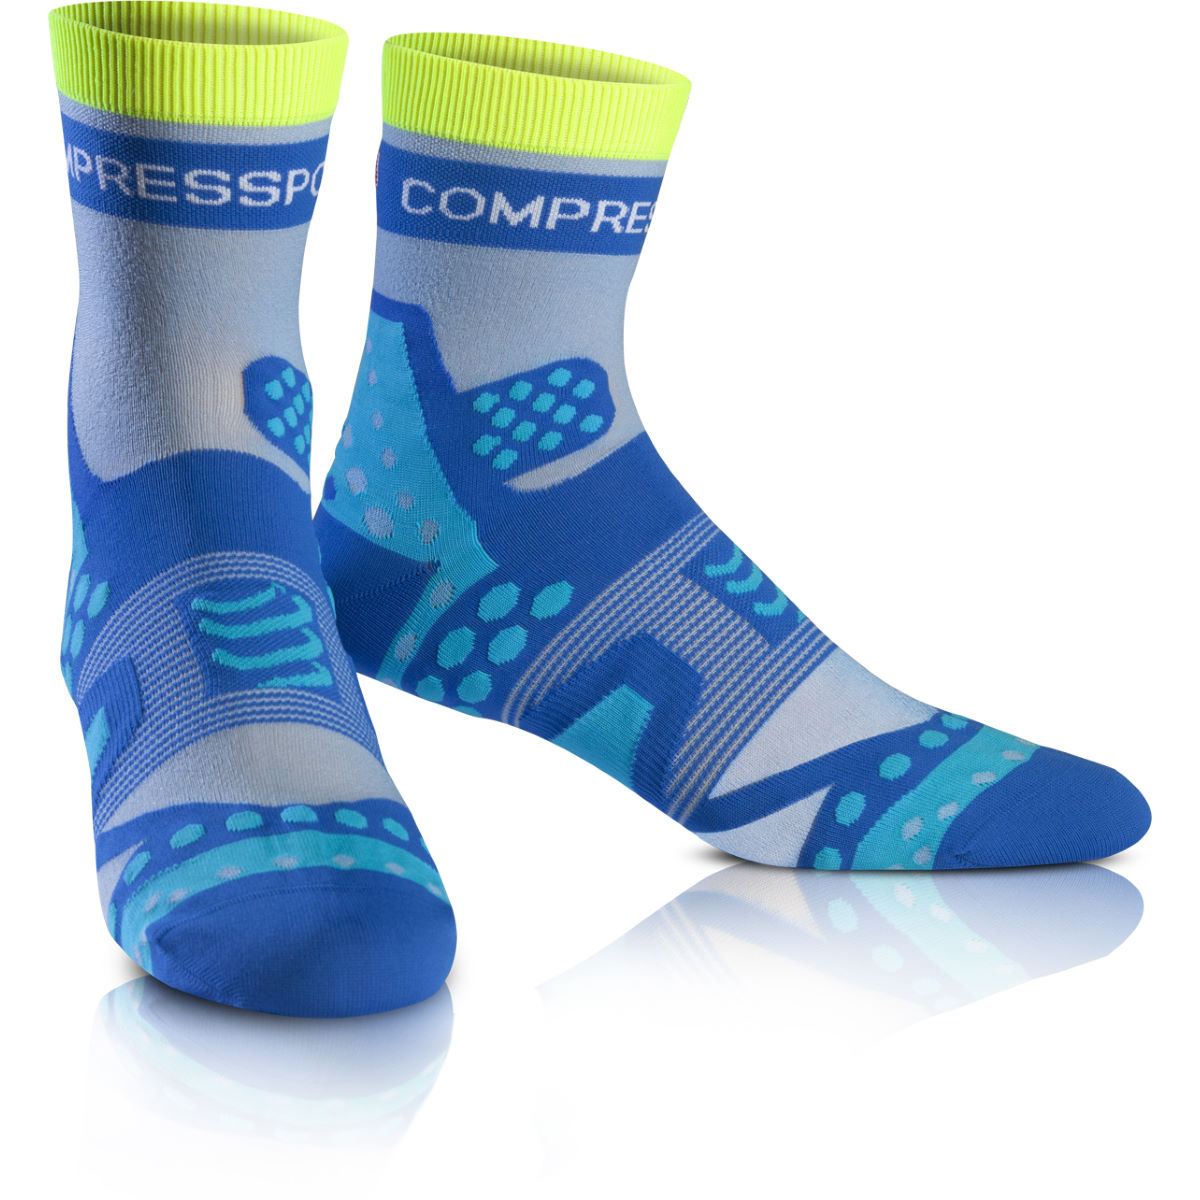 Calcetines Compressport Racing v2.1 Ultralight Run - Calcetines para correr